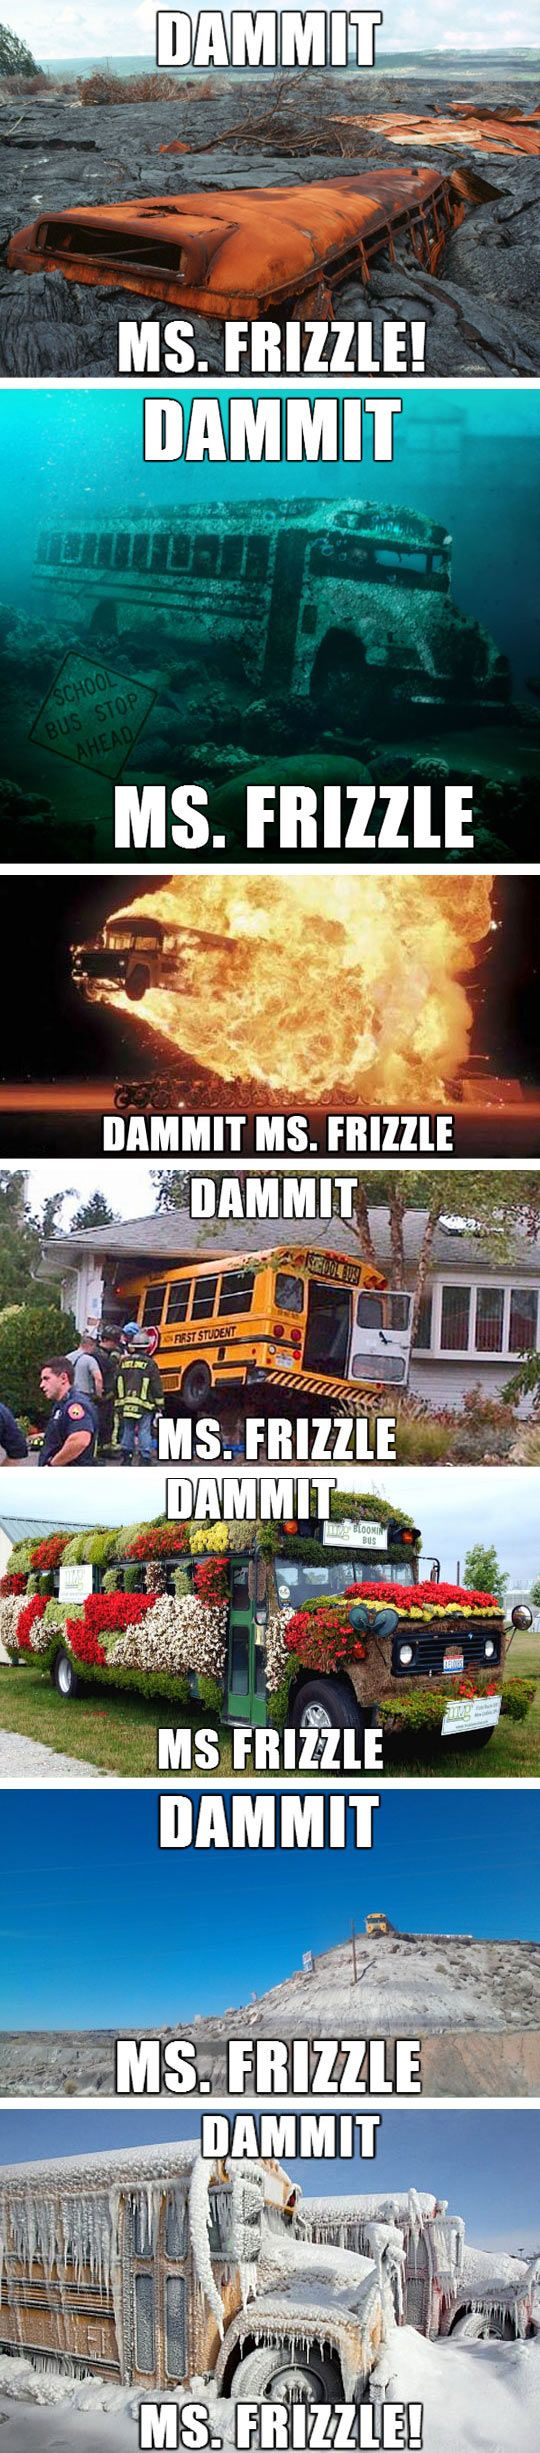 You had one job, Ms. Frizzle. I laughed way to hard at this